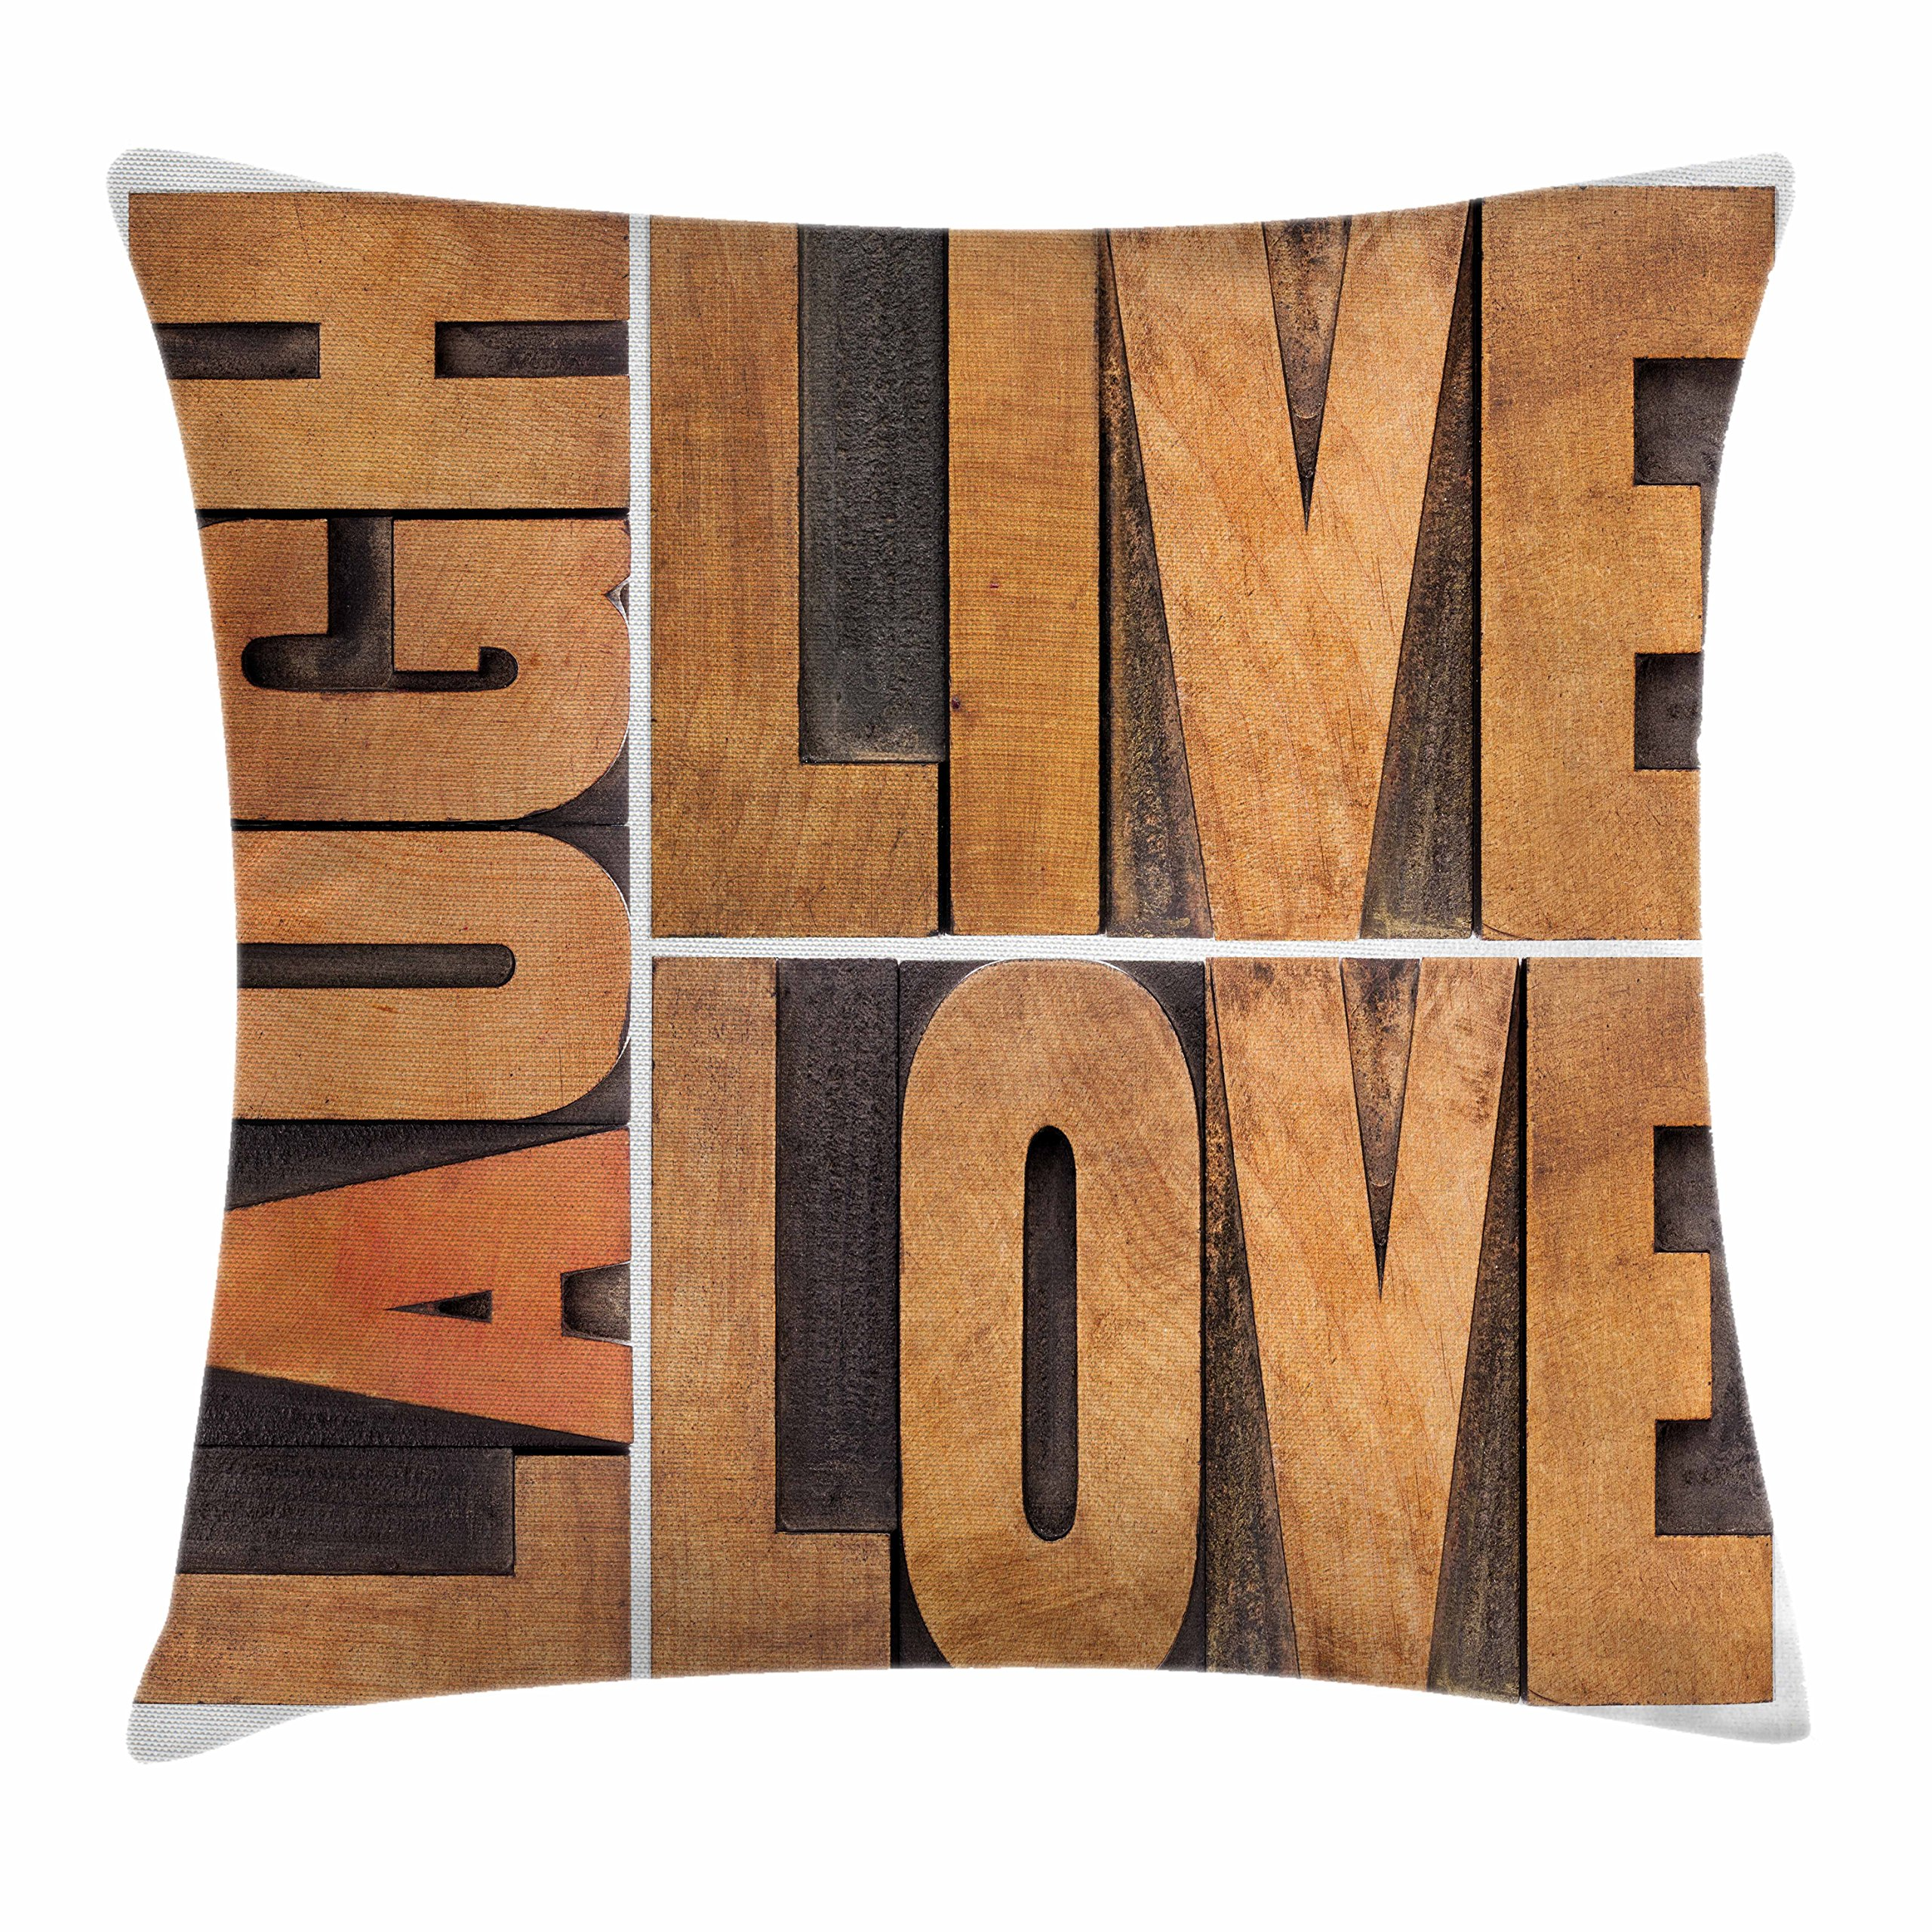 Ambesonne Live Laugh Love Decor Throw Pillow Cushion Cover, Macro Calligraphy Life Message Inspirational Digital Graphic, Decorative Square Accent Pillow Case, 20 X 20 Inches, Light Caramel Umber